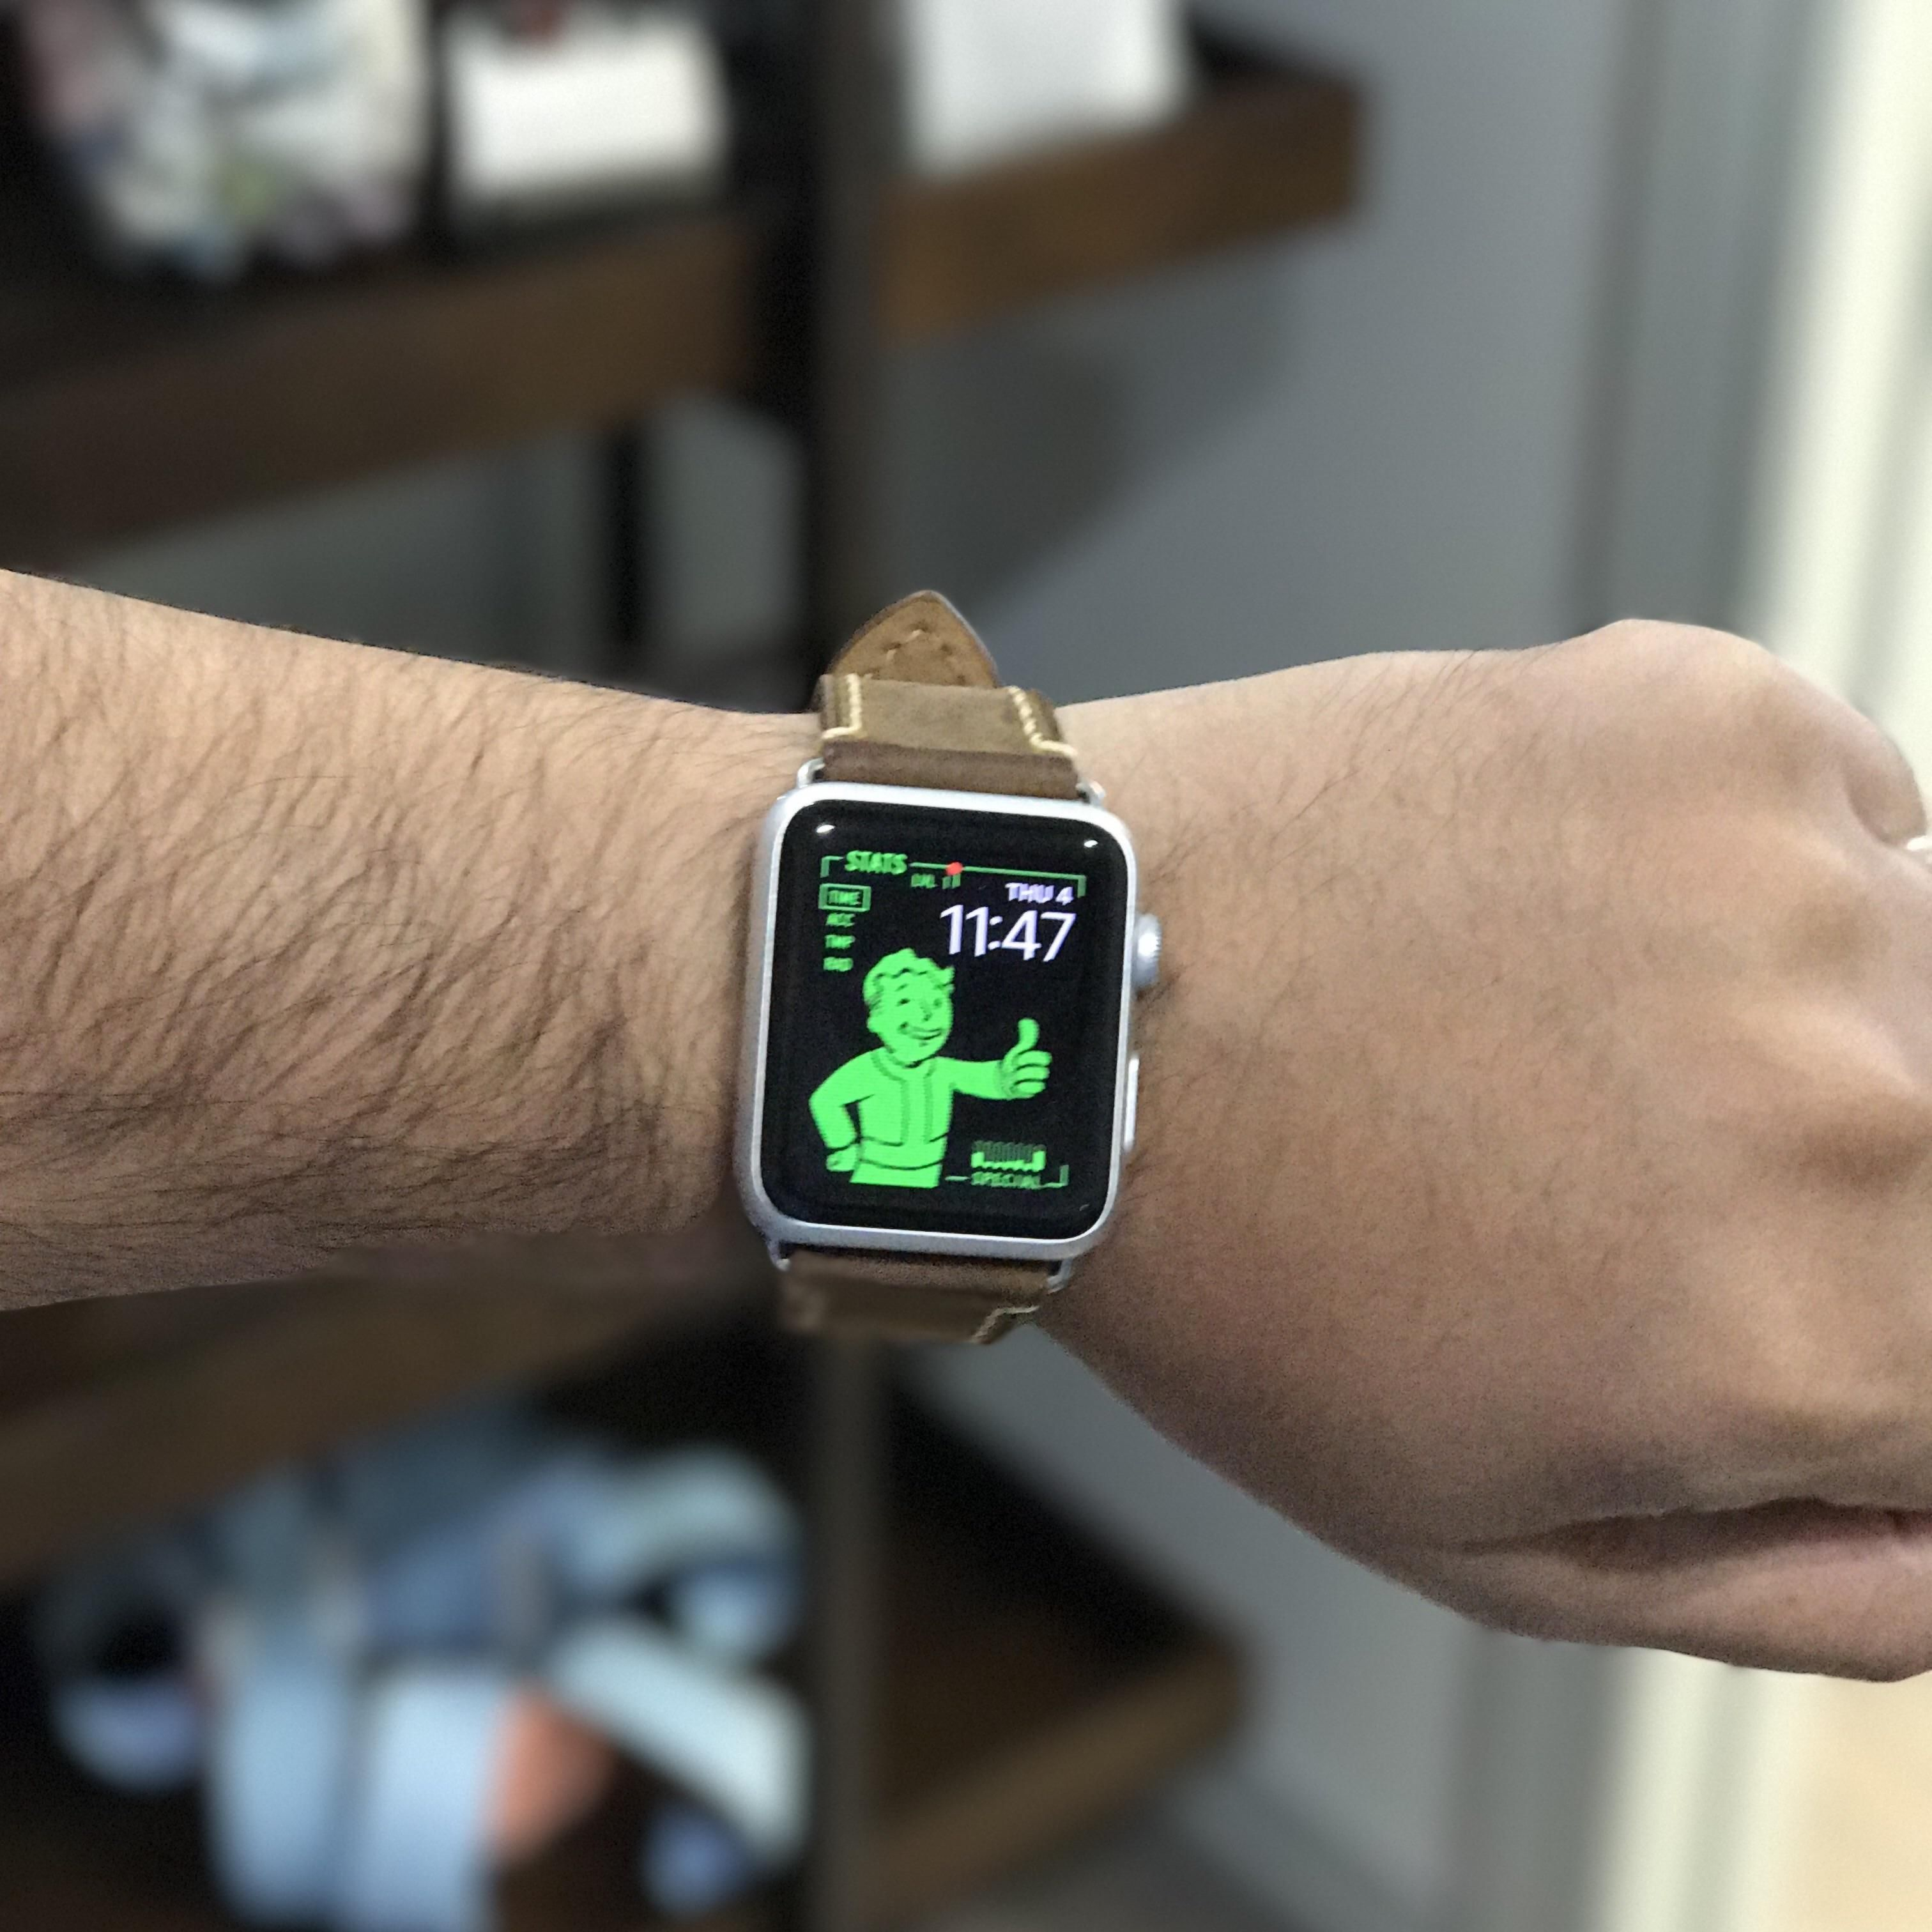 Apple Watch can be a PipBoy too! Fallout4 gaming